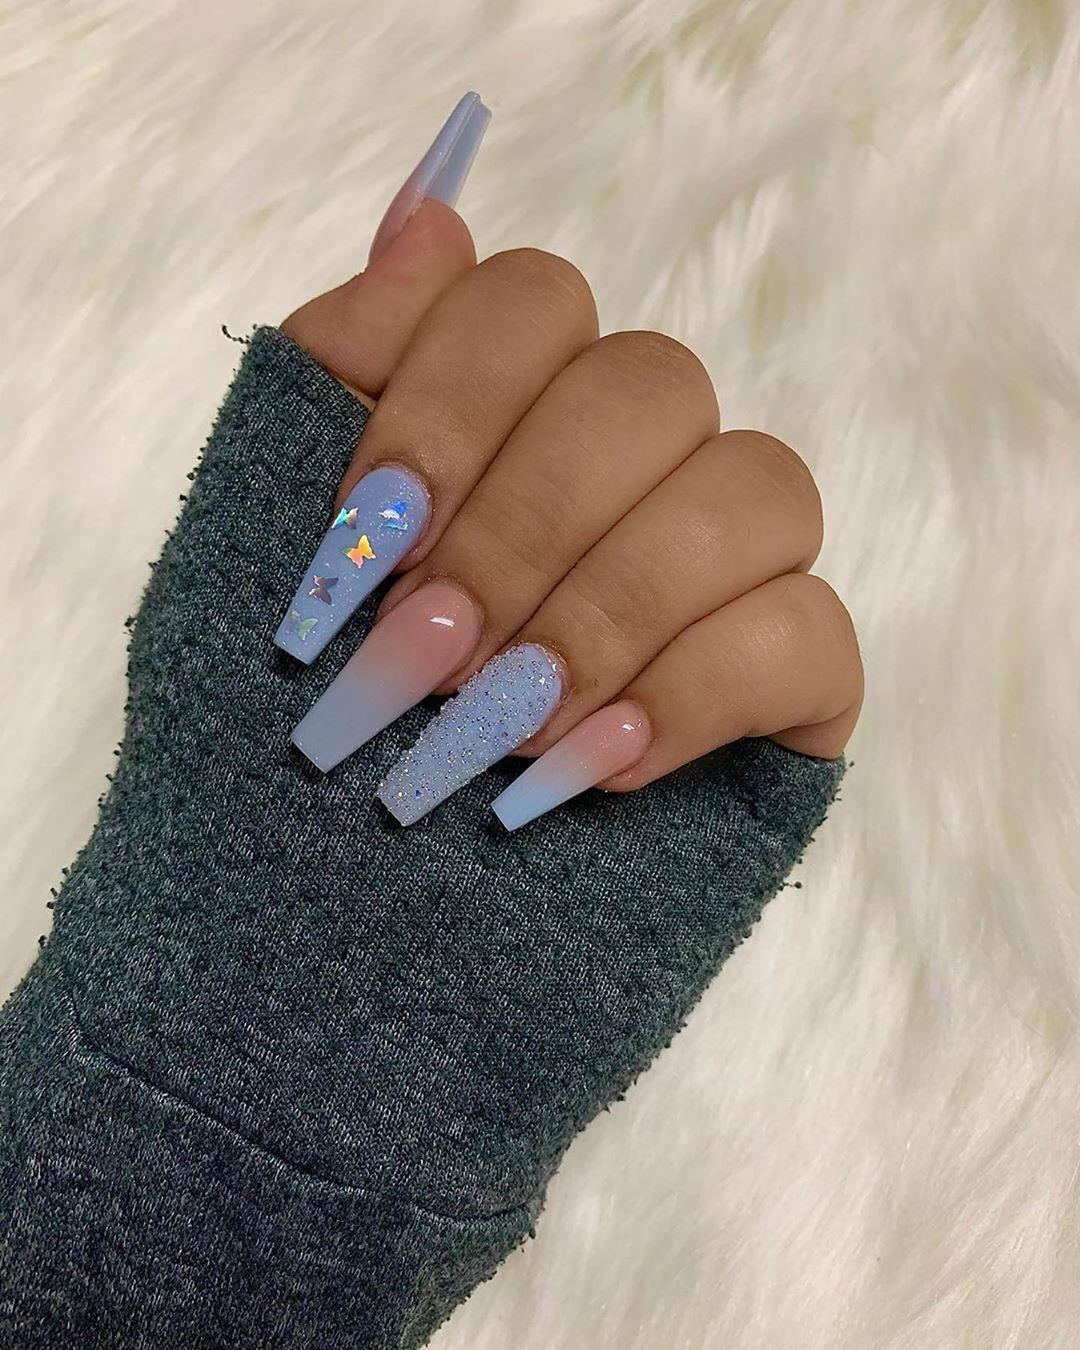 1 Nails Page On Instagram Follow Us Theluckynails Follow Us Nailsclipspro Nailfeed Nailcand In 2020 Blue Acrylic Nails Best Acrylic Nails Long Acrylic Nails,Simple Arya Work Blouse Designs Images